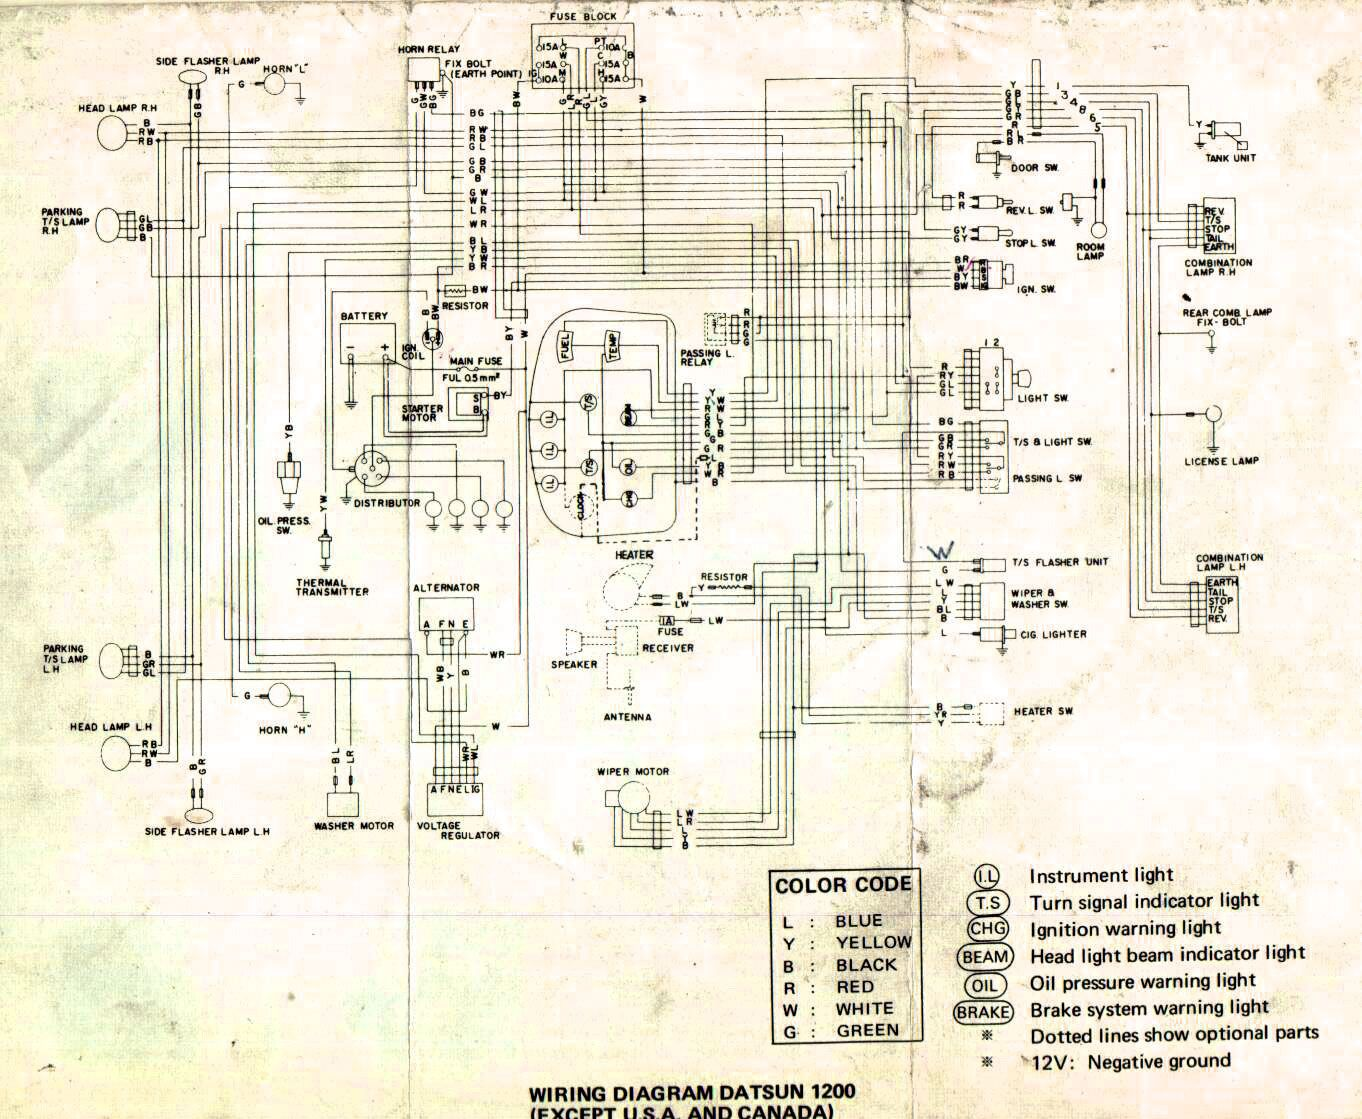 Wiring diagram for nissan 1400 bakkie #8 | Nissan, Diagram ... on